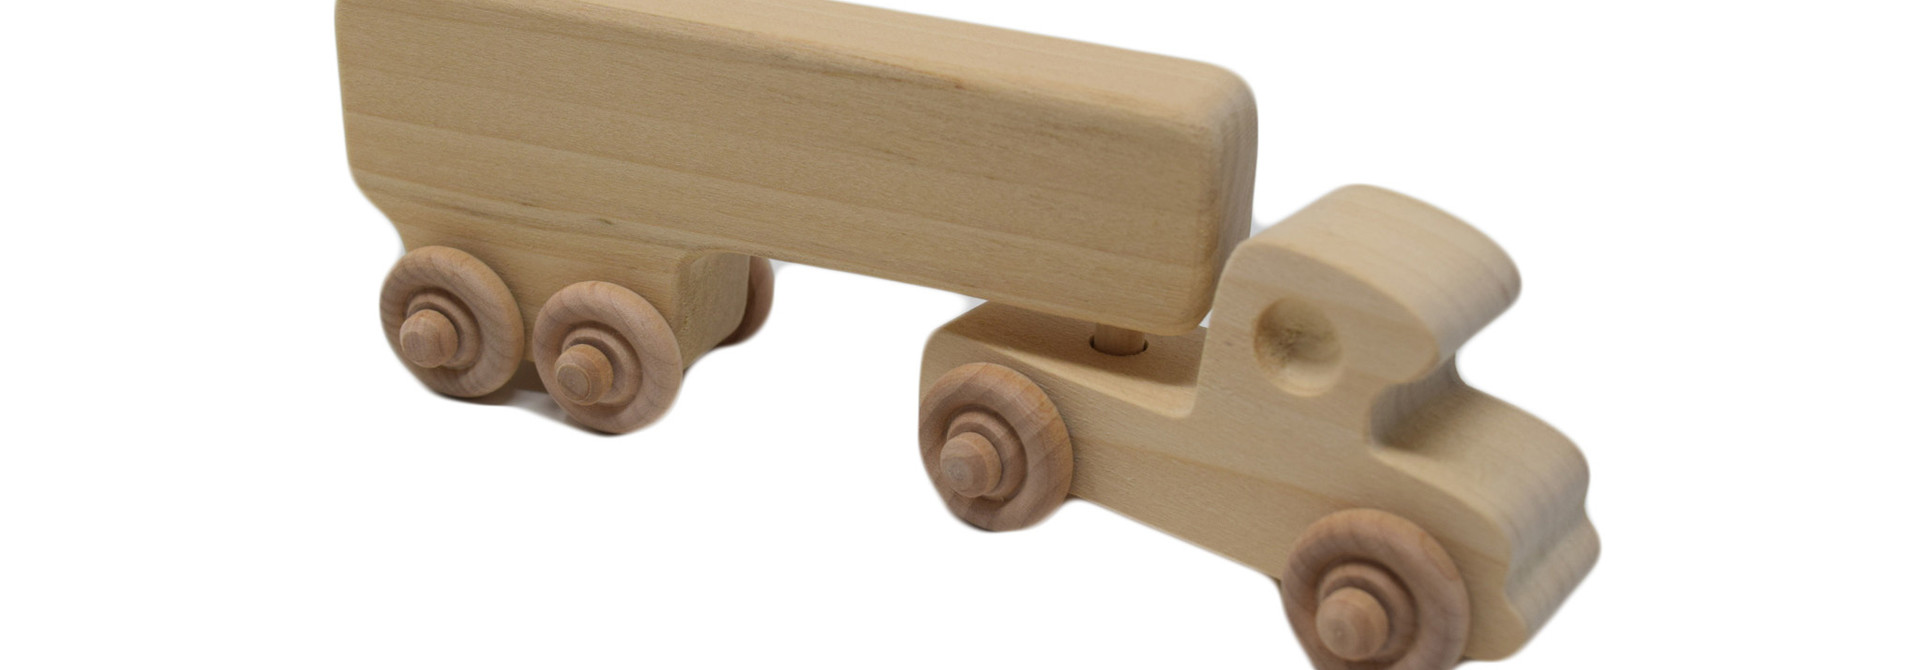 Wooden Box Truck Toy